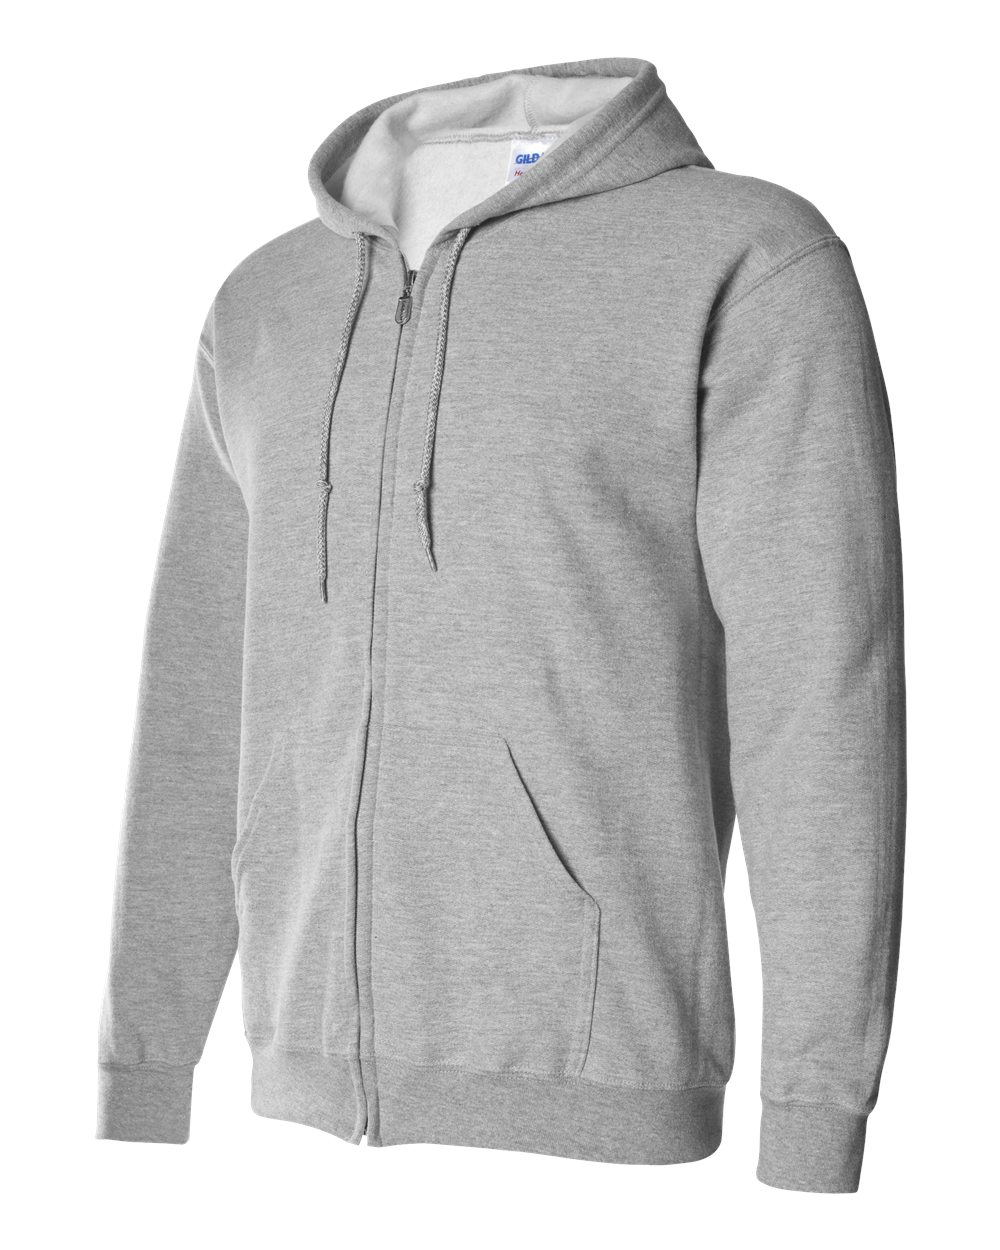 Gildan Heavy Blend Full Zip Hoodie GIL18600 Sports Grey